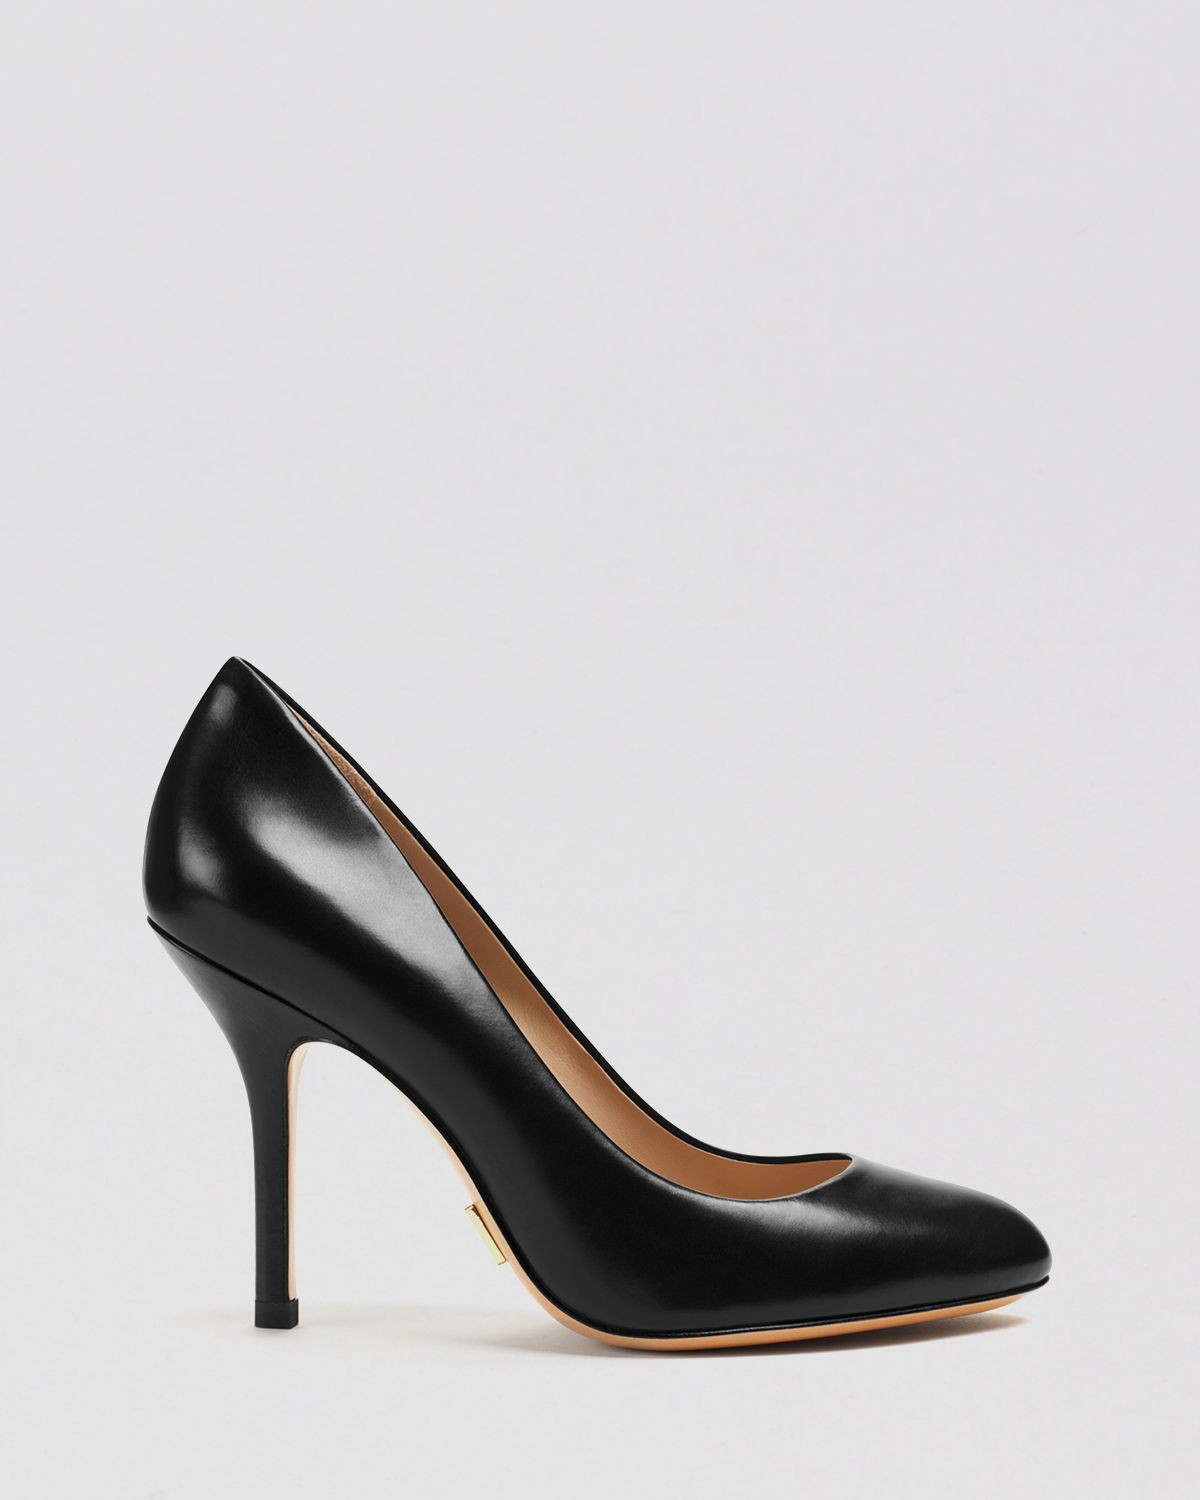 Michael Kors Pointed toe pumps GYwuaYsZ